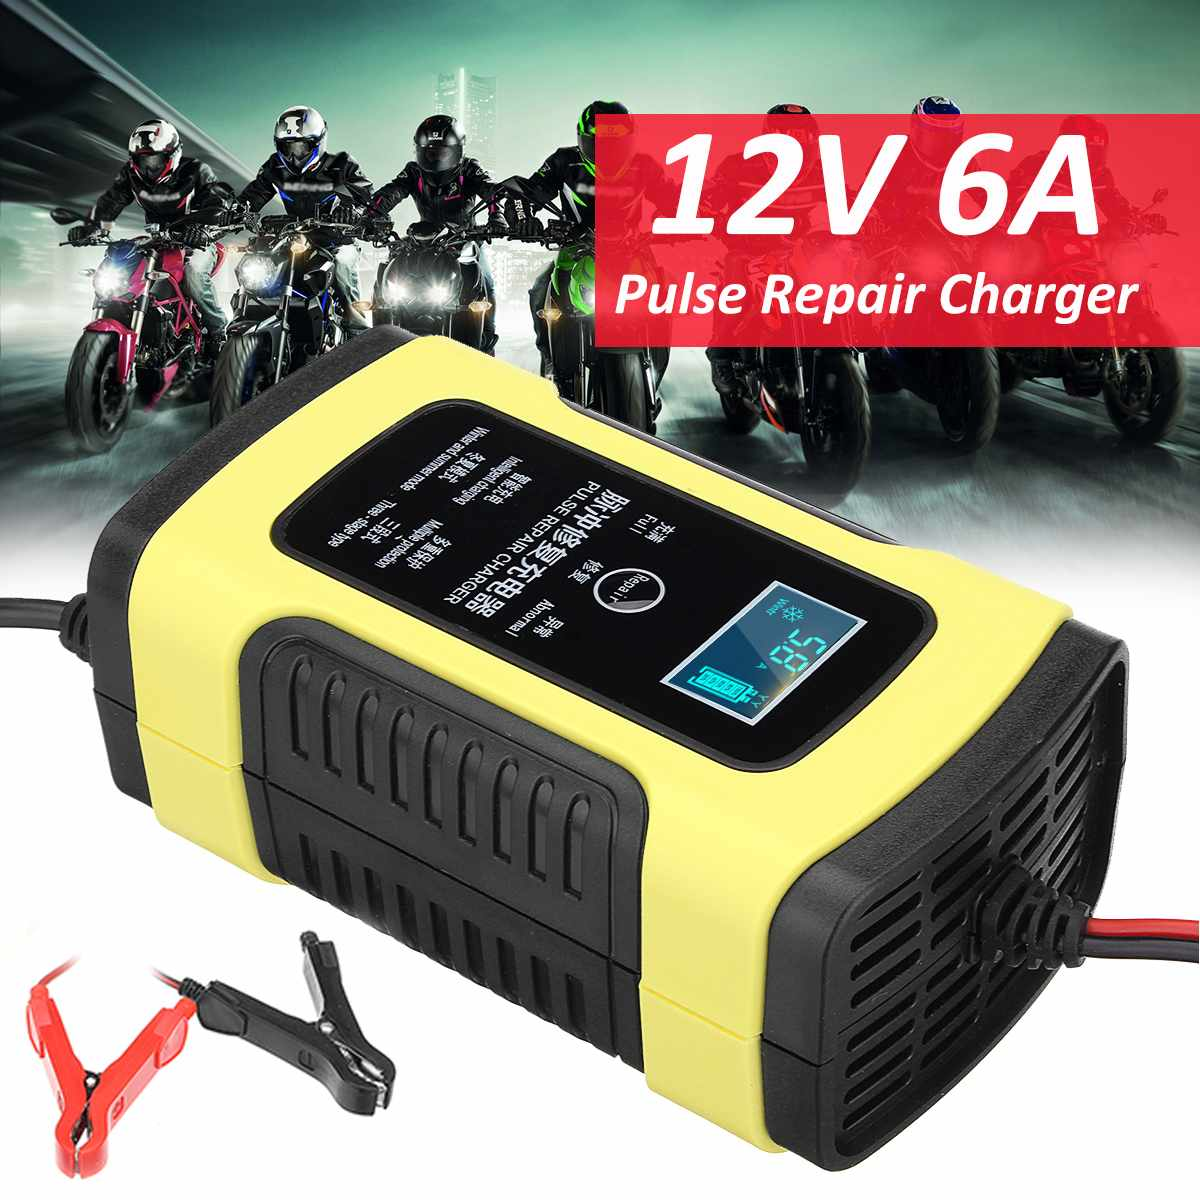 6A 12V Fully Automatic Pulses Repair Smart Battery Charger Maintainer Desulfator Car Truck Motorcycle Lead Acid Battery Charger